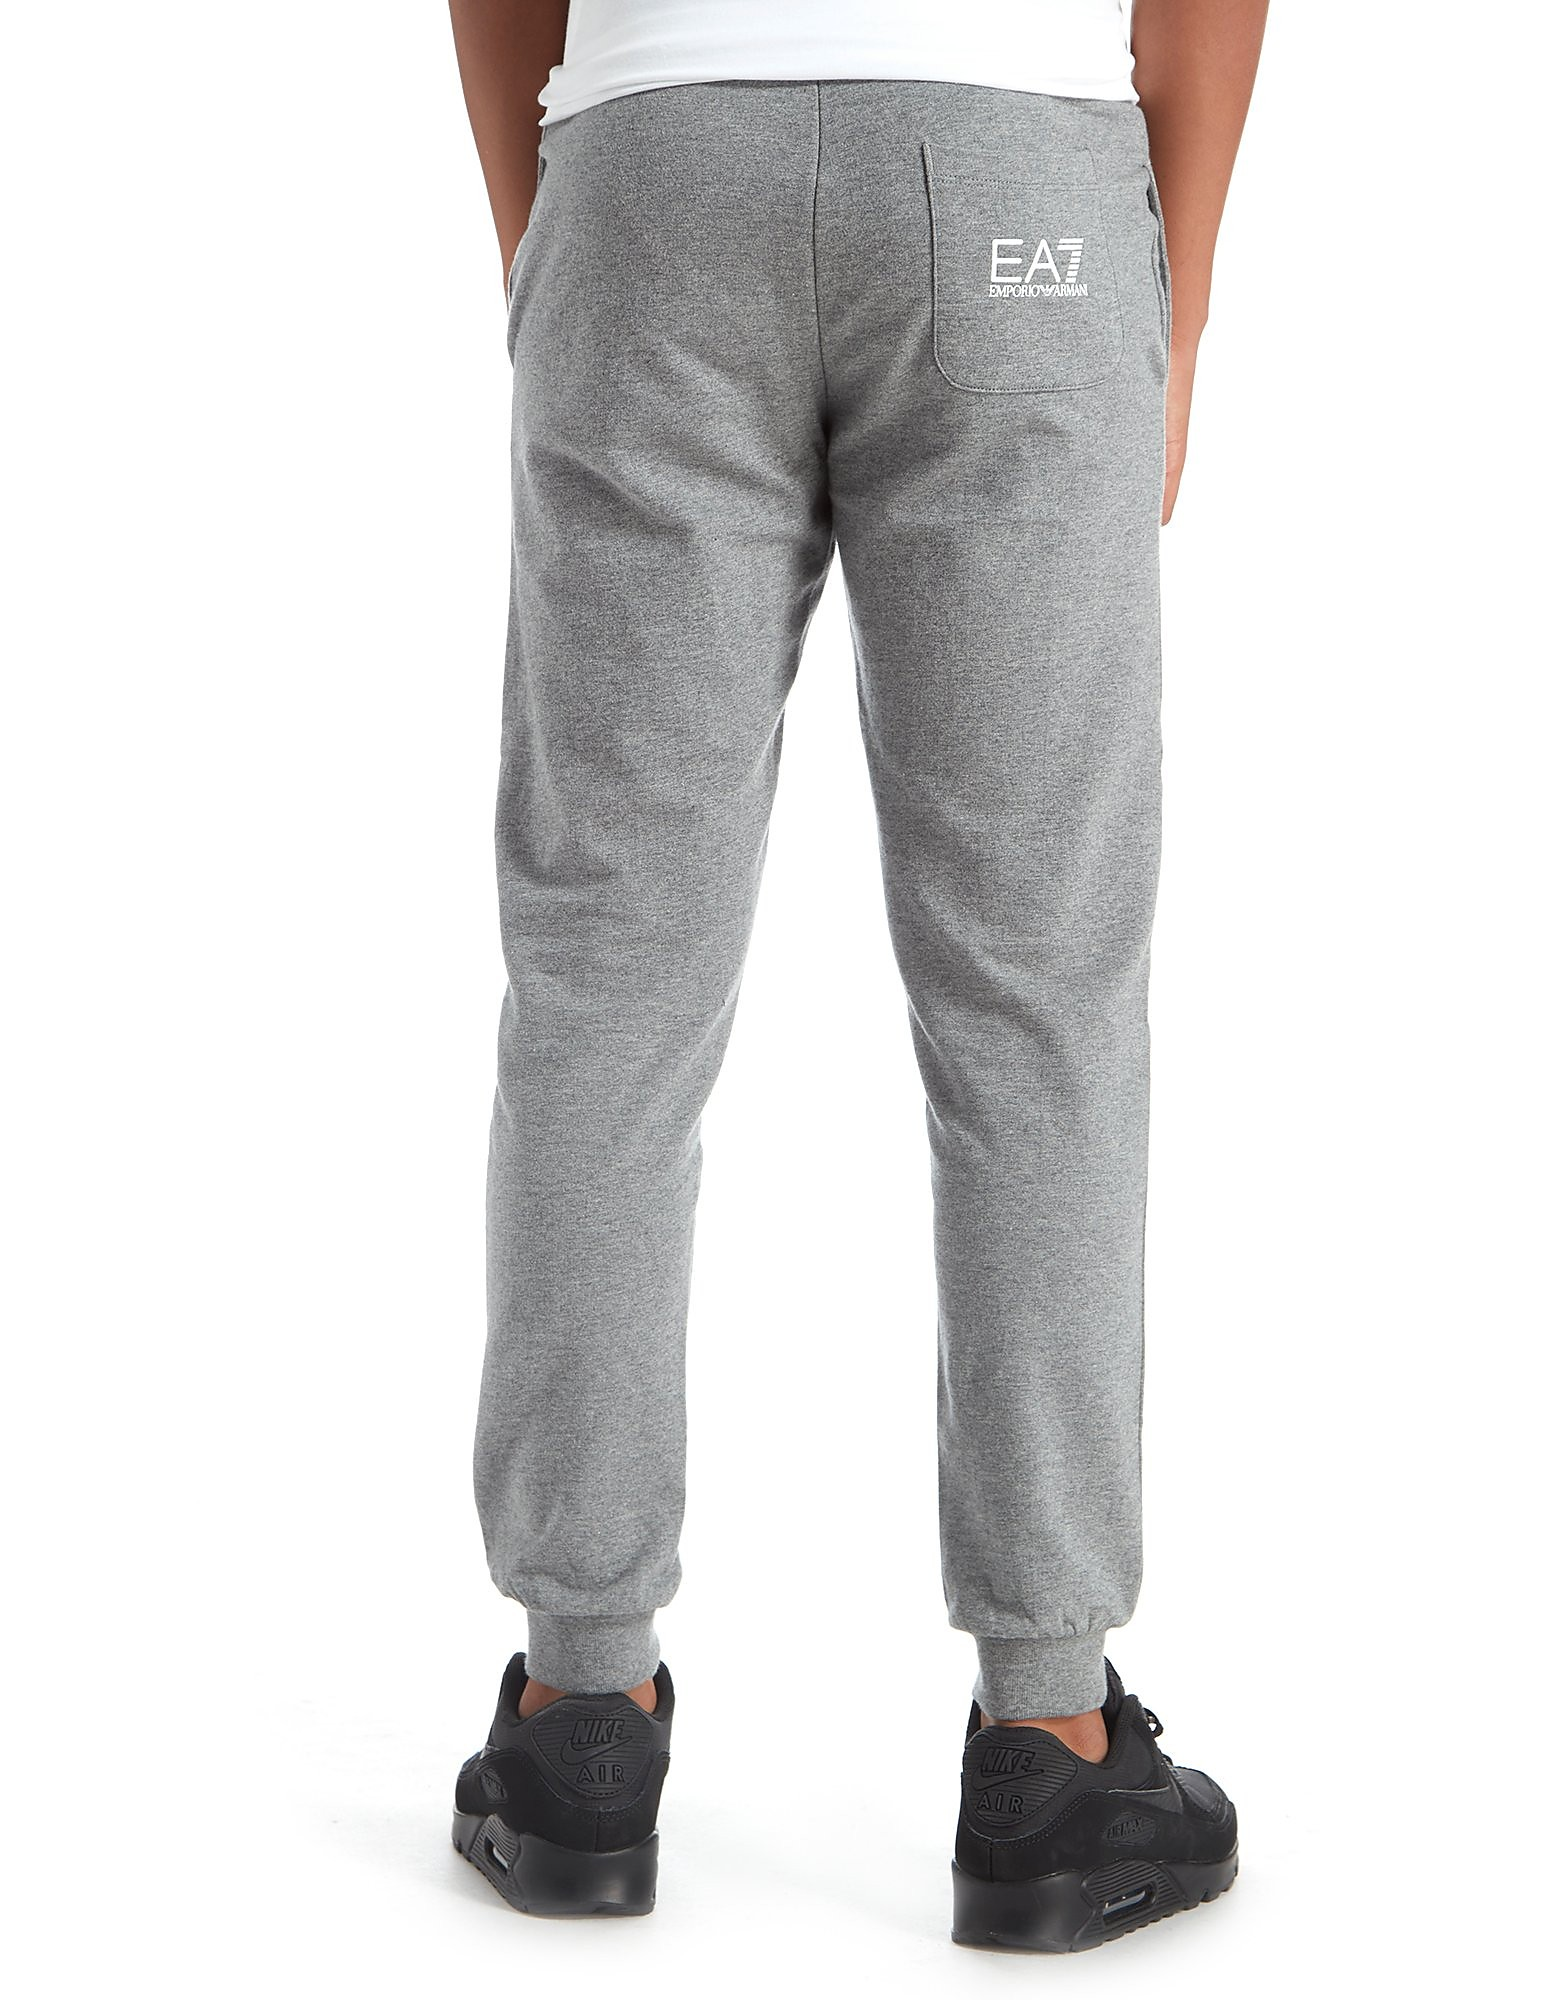 Emporio Armani EA7 Core Cuff Pants Junior